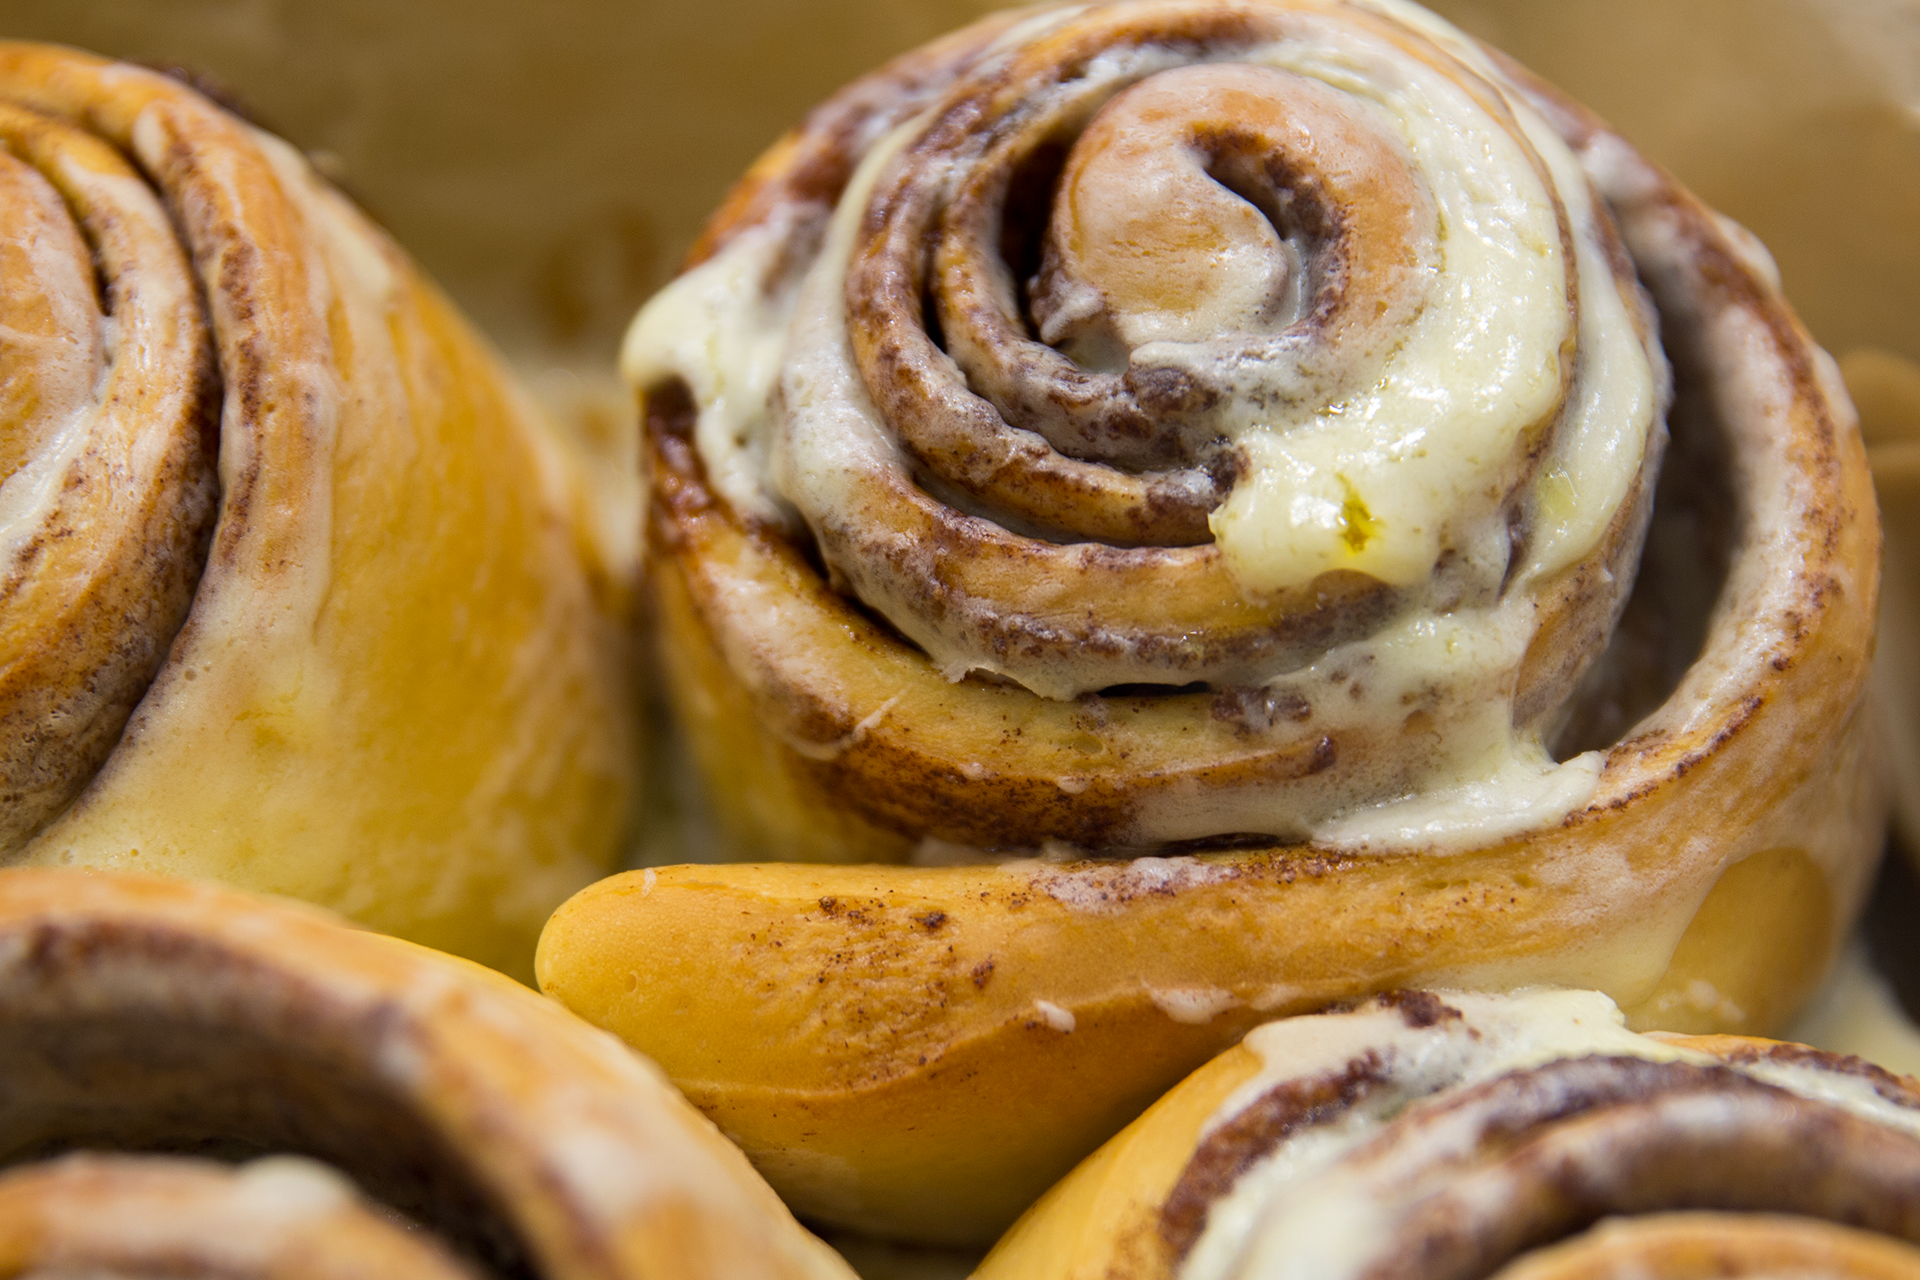 Cinnabon is returning to Manhattan next month